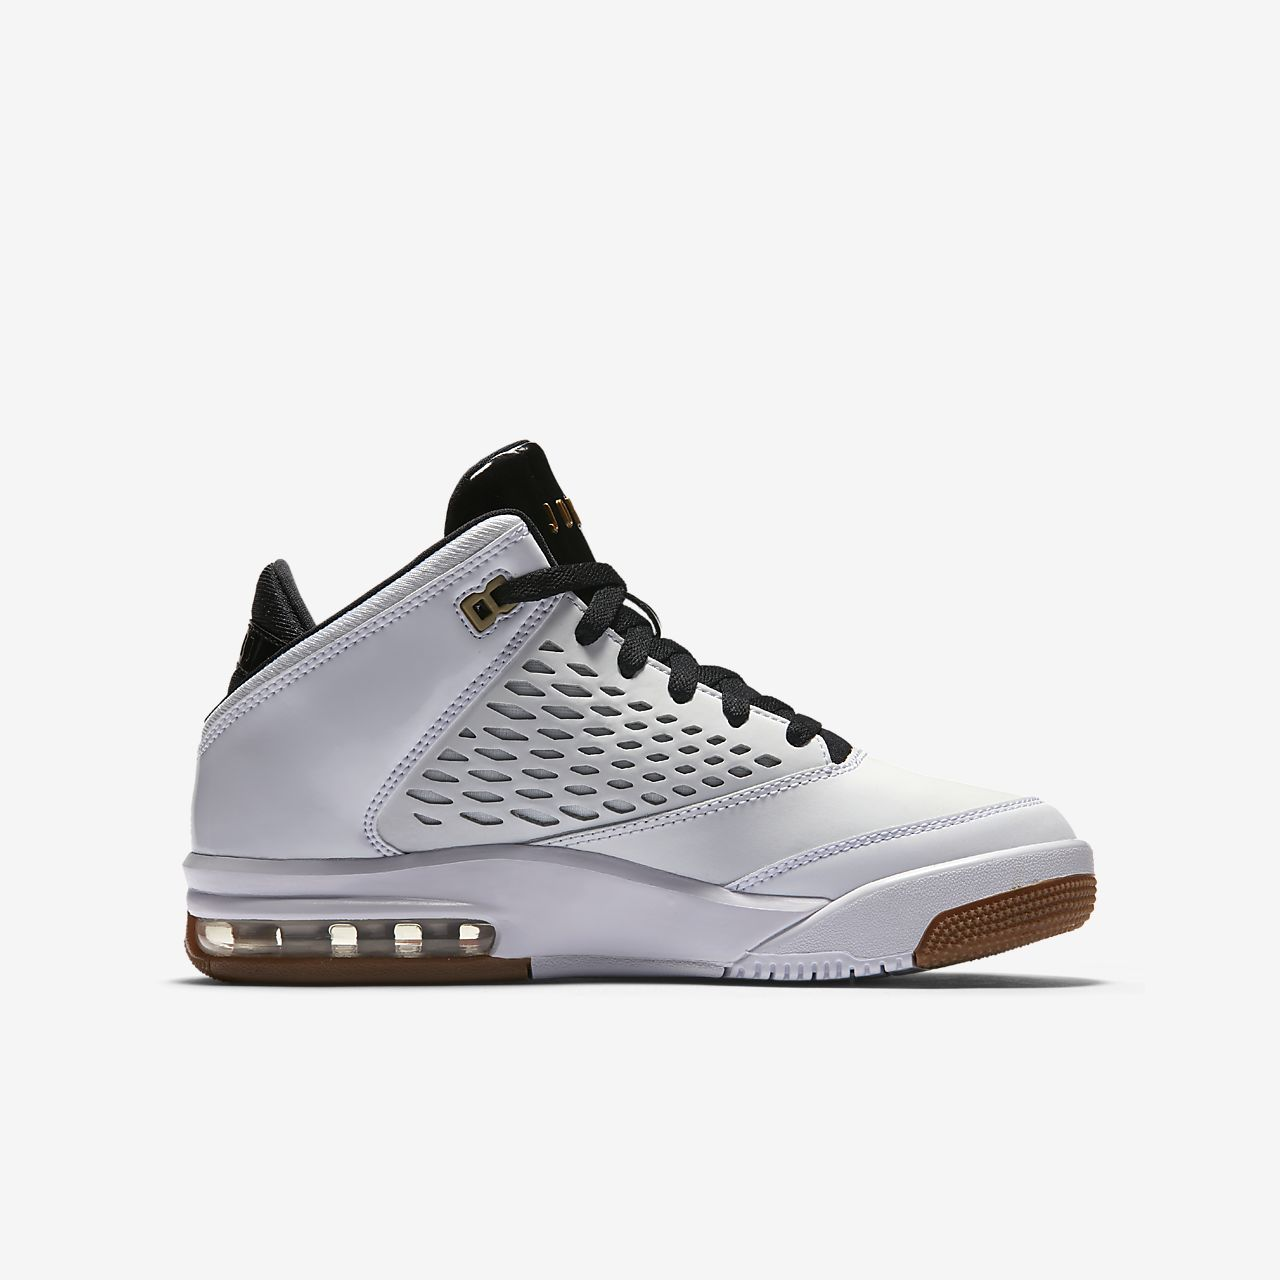 jordan flight shoes men nz